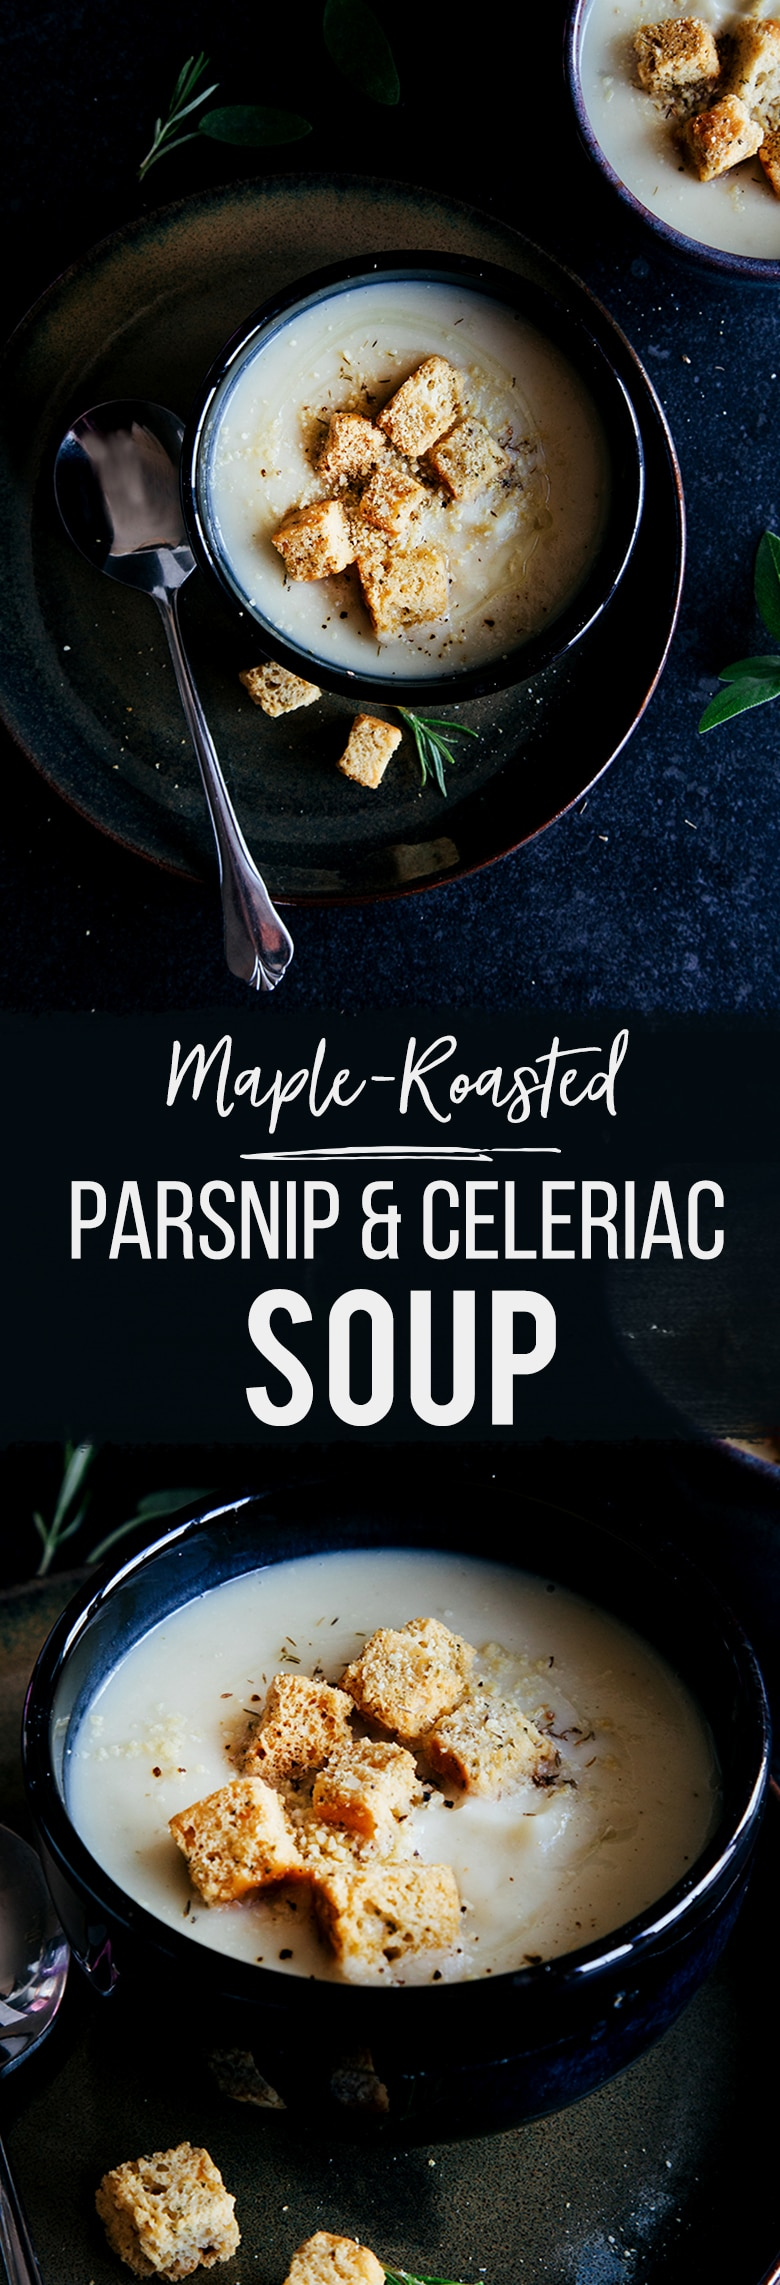 Maple Roasted Parsnip & Celeriac Soup